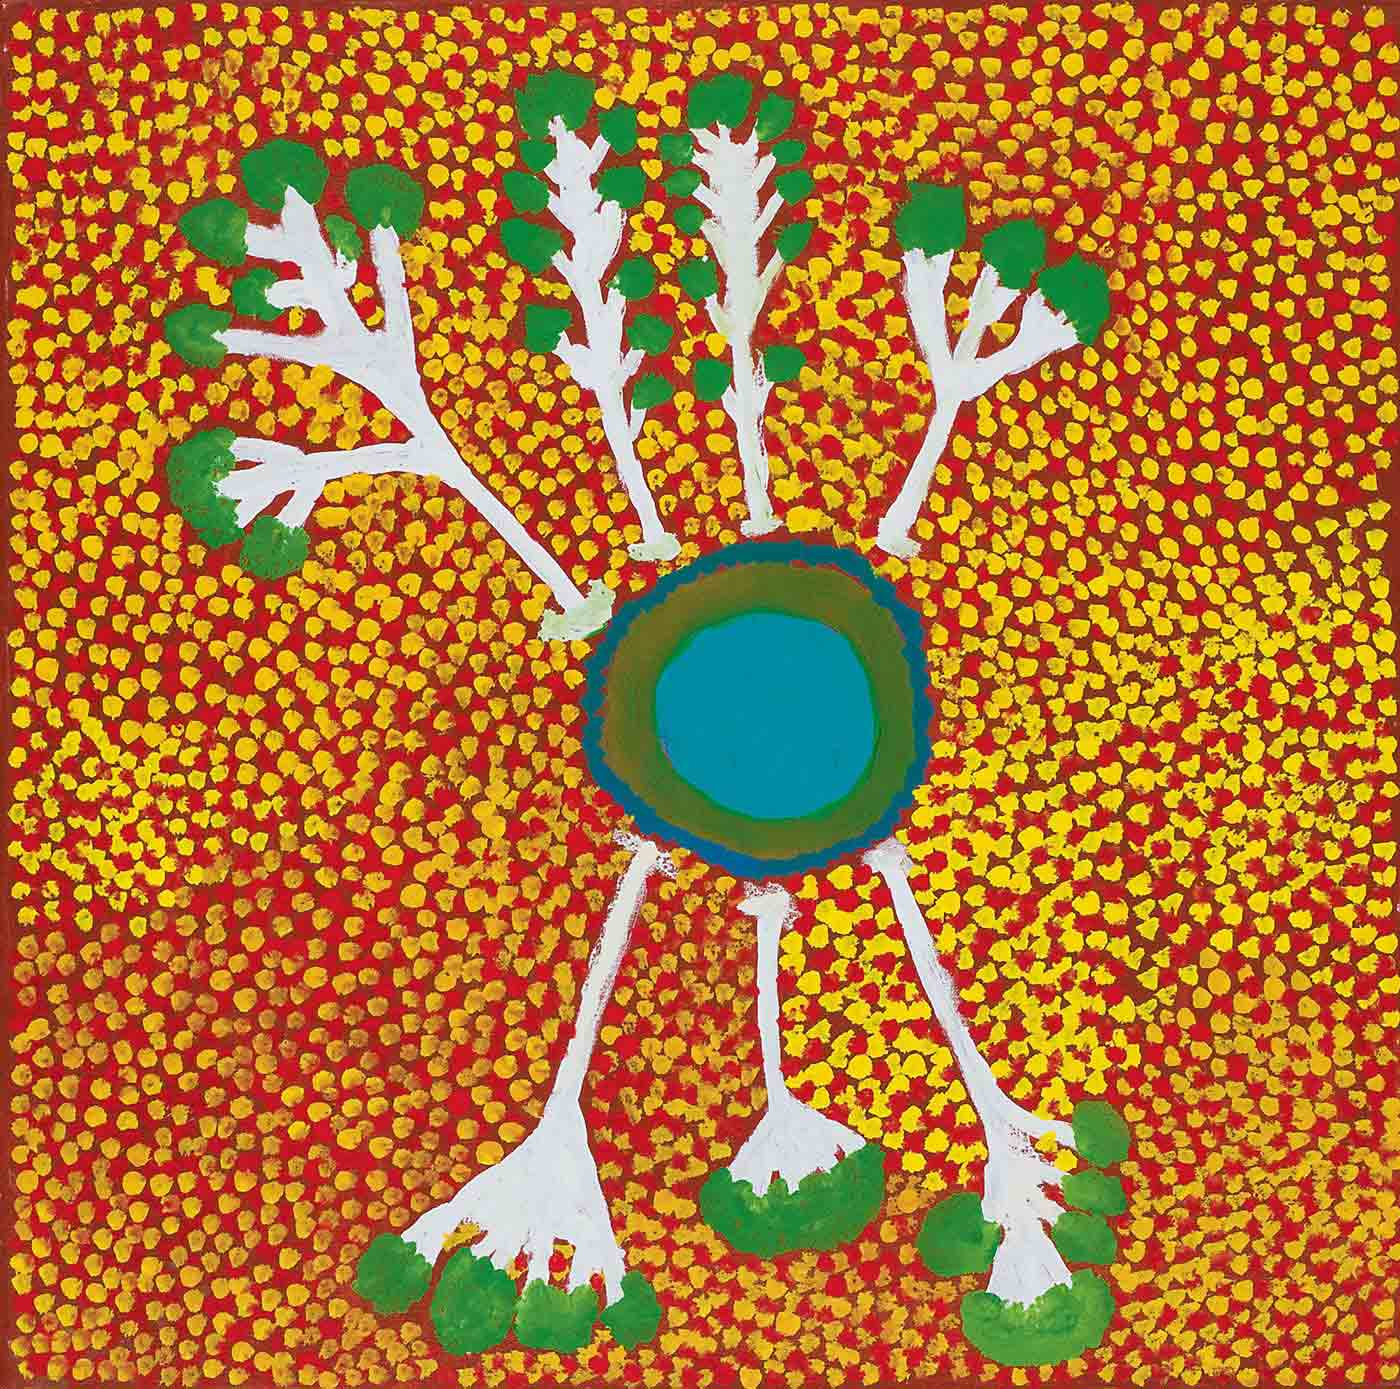 A square painting on canvas with a concentric circle in turquoise, green and blue in the centre with four tree branches in white and green protruding from the top, and three from the bottom. The background of the painting is brown with an overlay of yellow and red dots. - click to view larger image